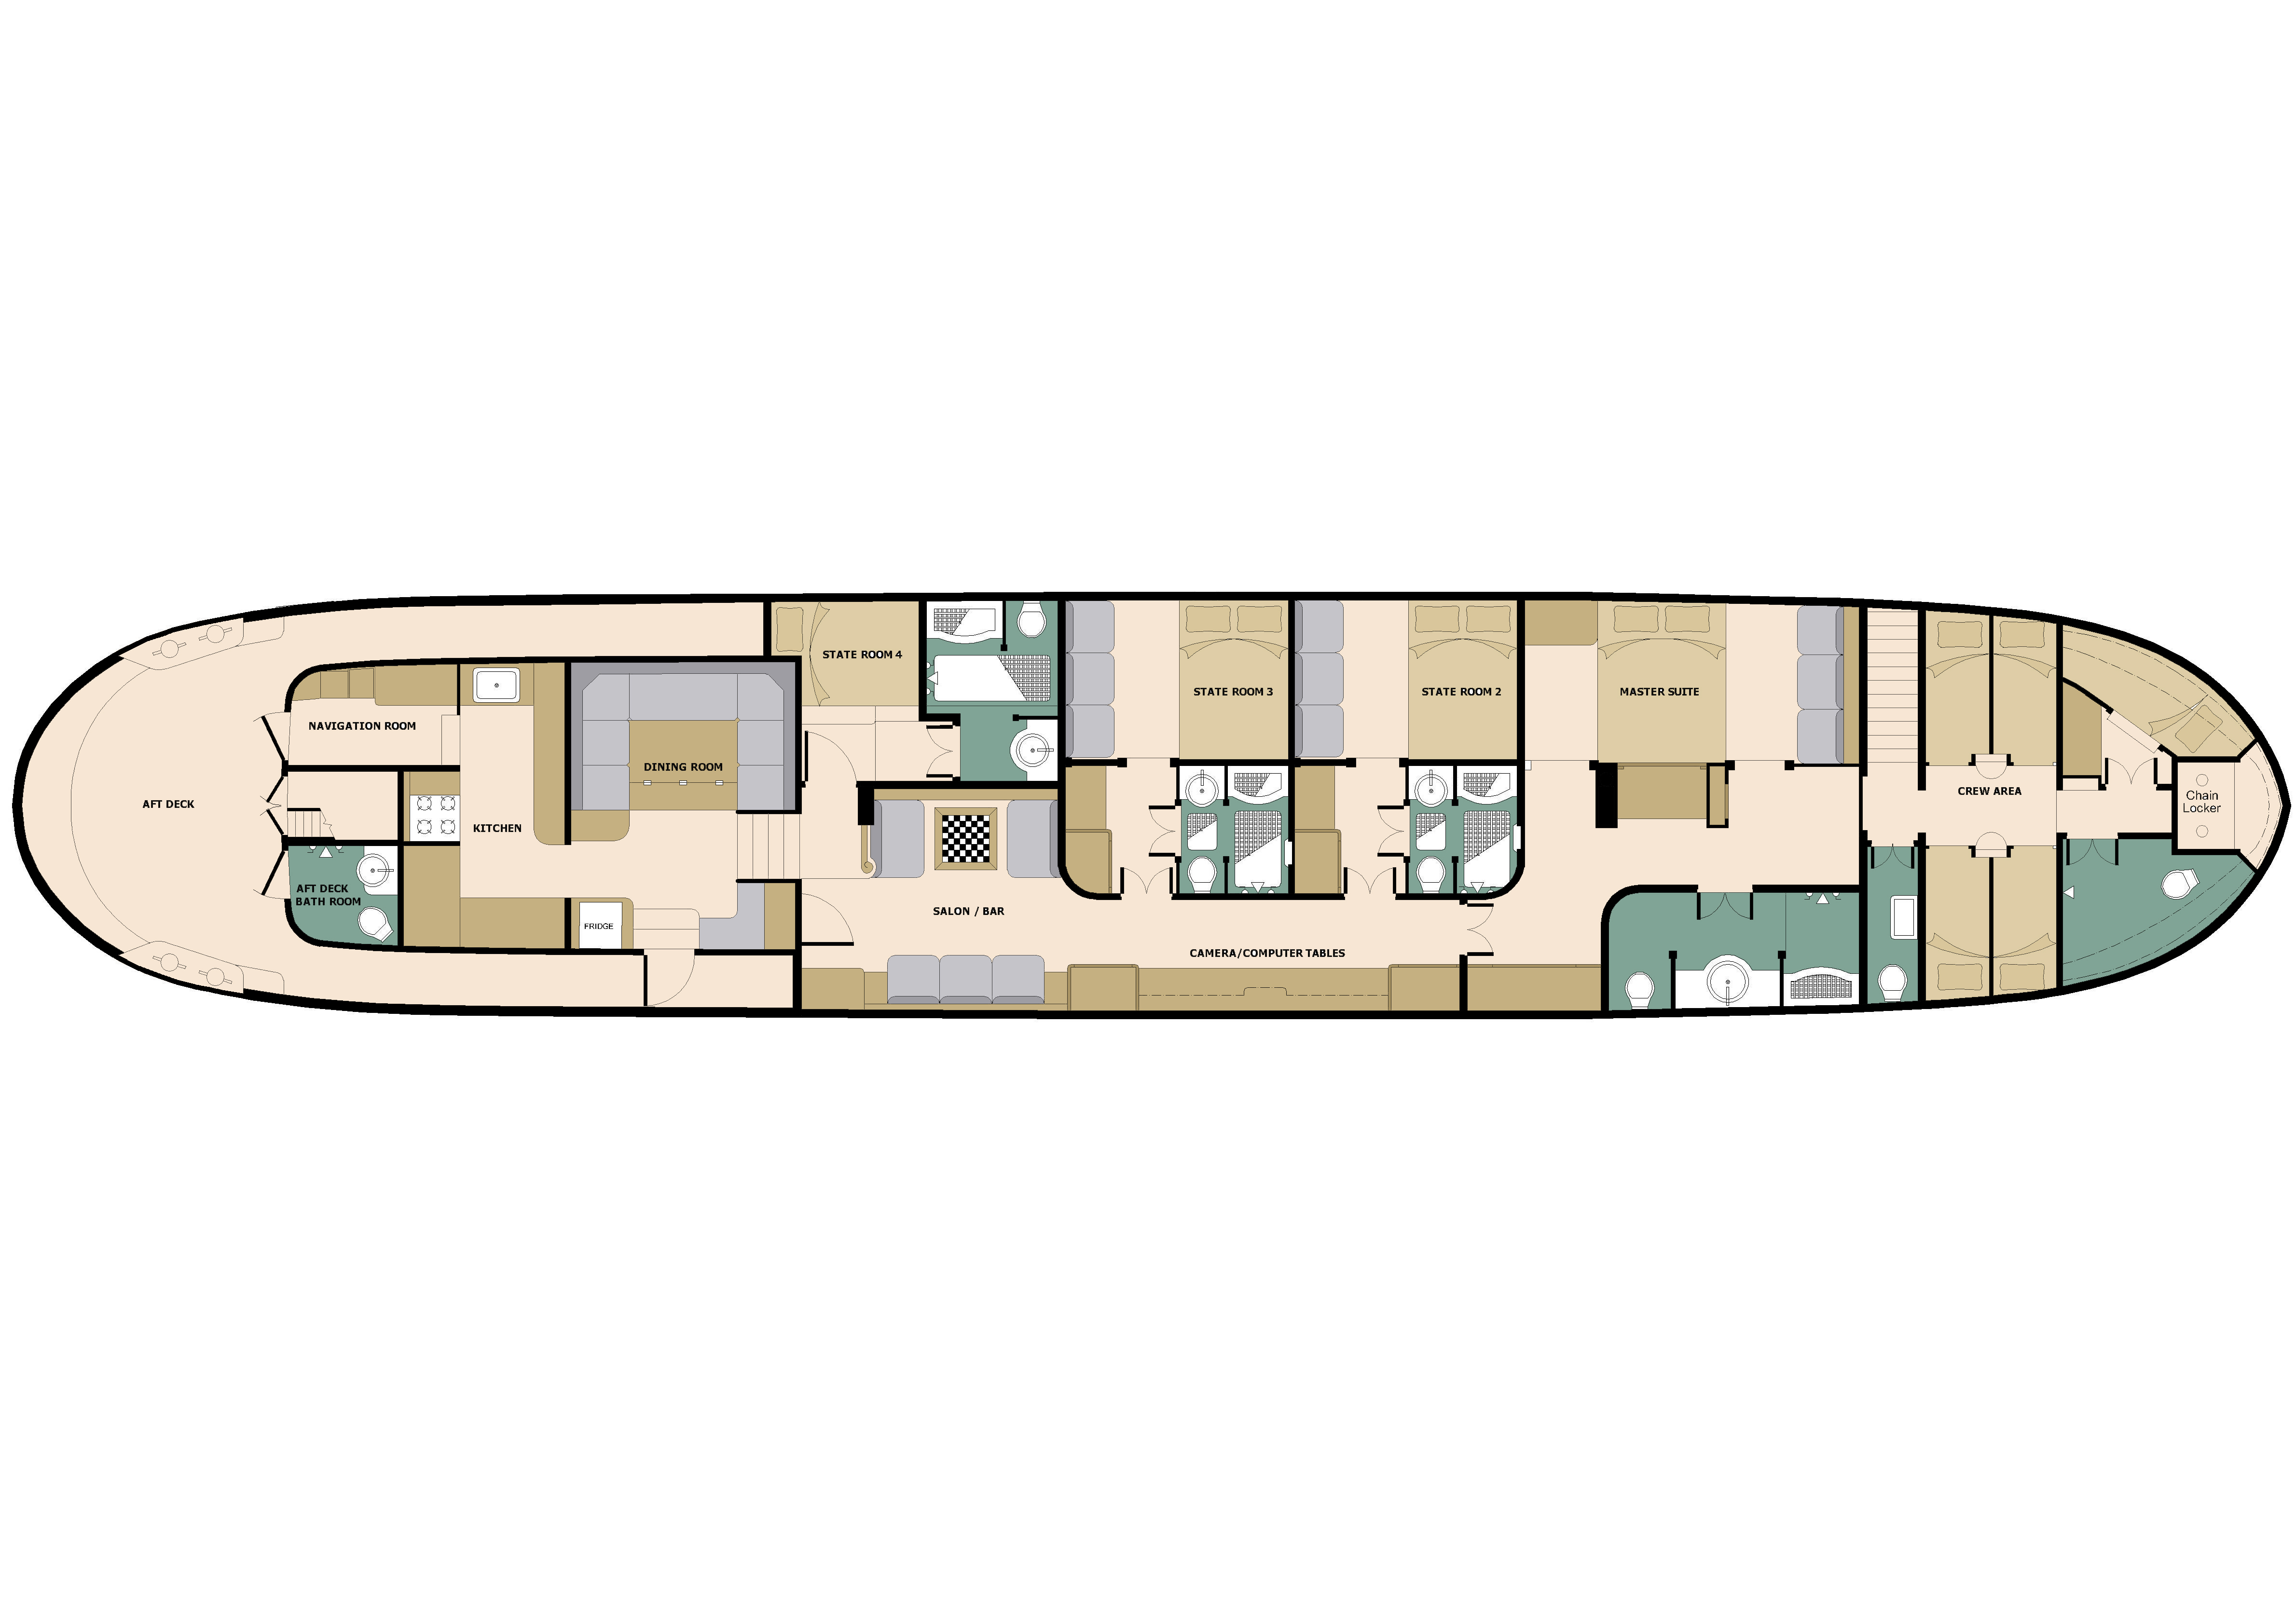 Adelaar Deck Plan floorplan